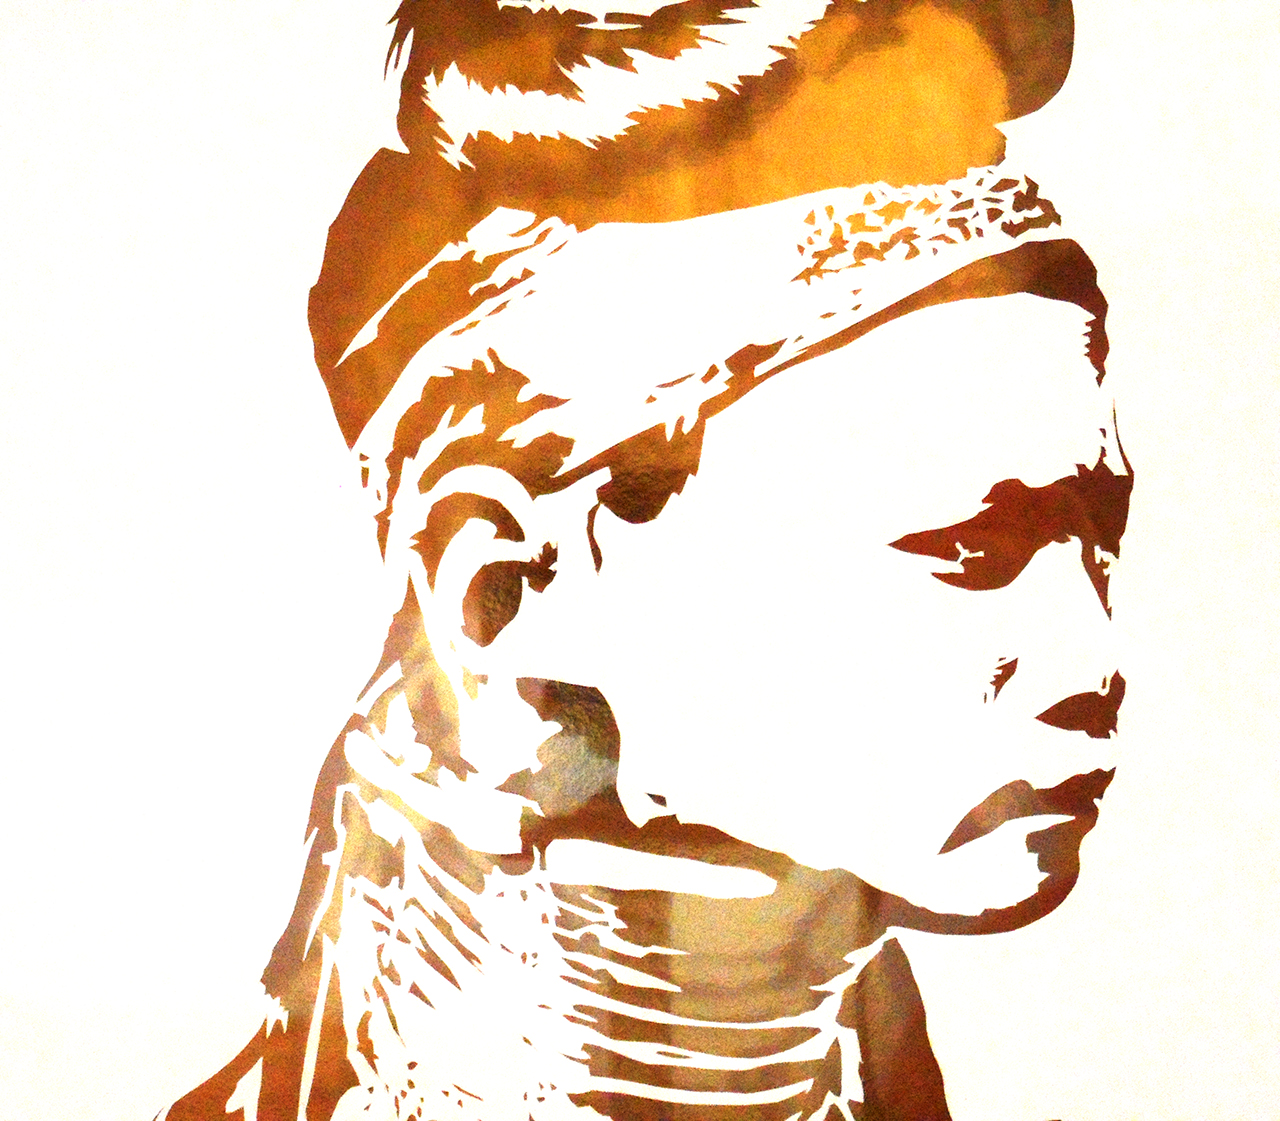 Majestic-and-Iconic-Paper-Cut-Silhouettes-of-Tribal-Men-and-Women-by-Valentine-Louafi-02b